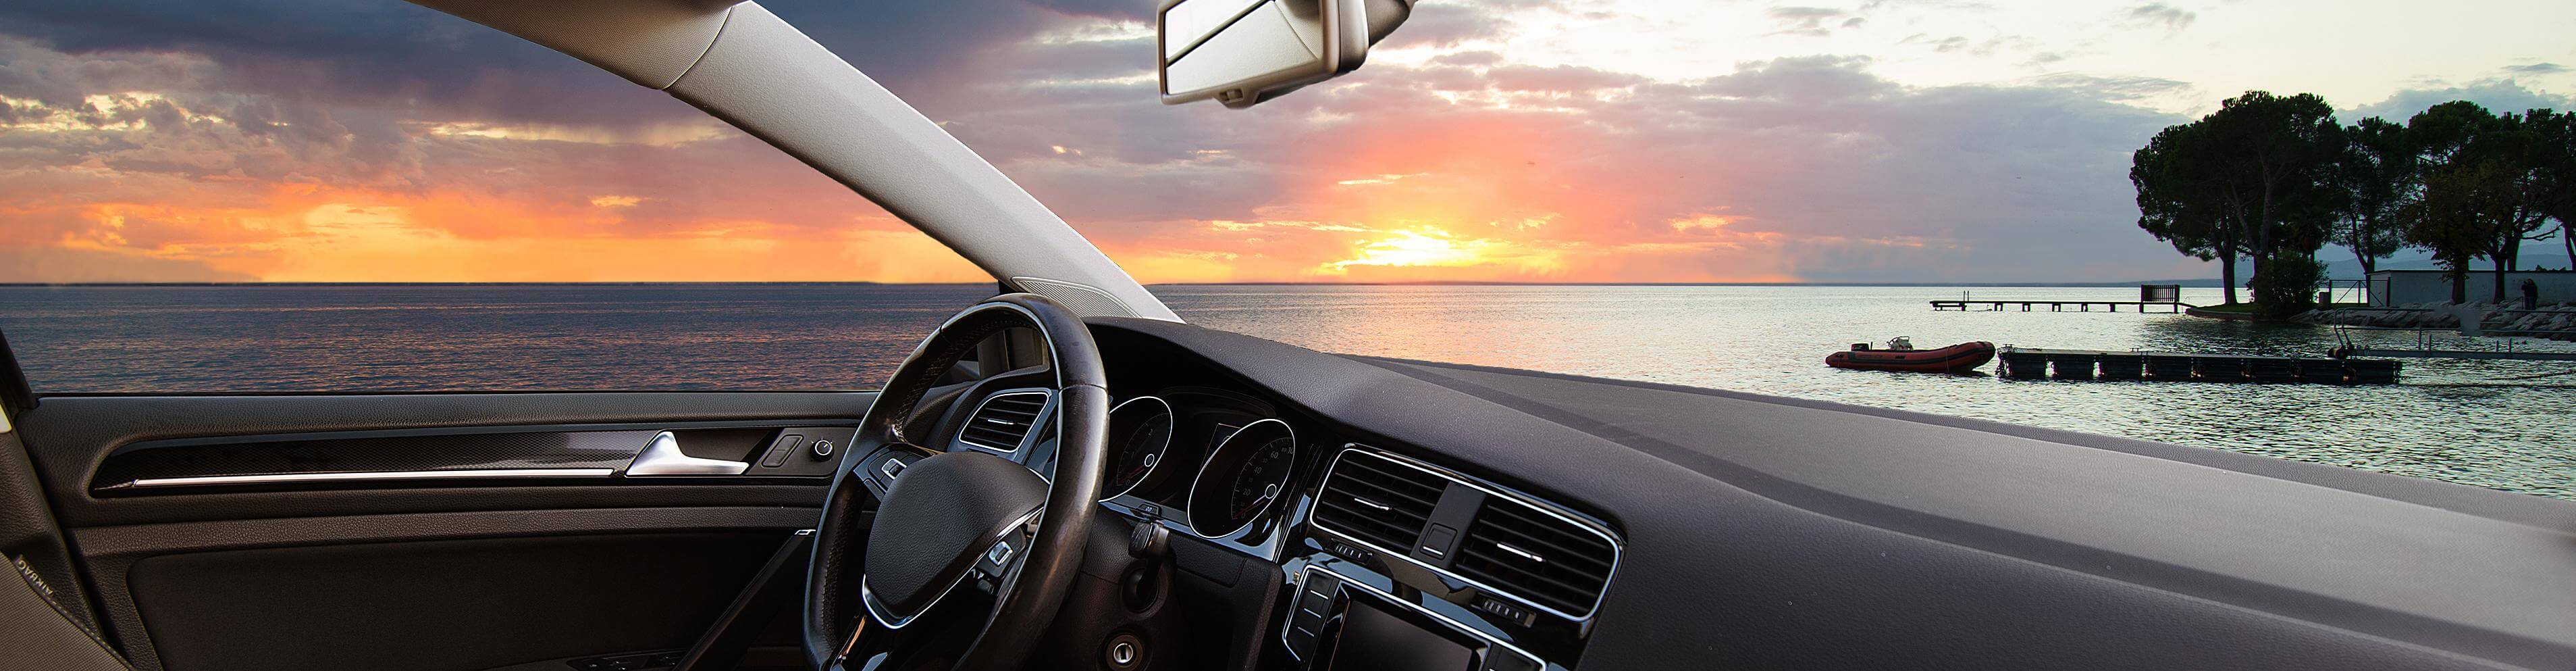 Scenic shot from inside a car looking at sunset